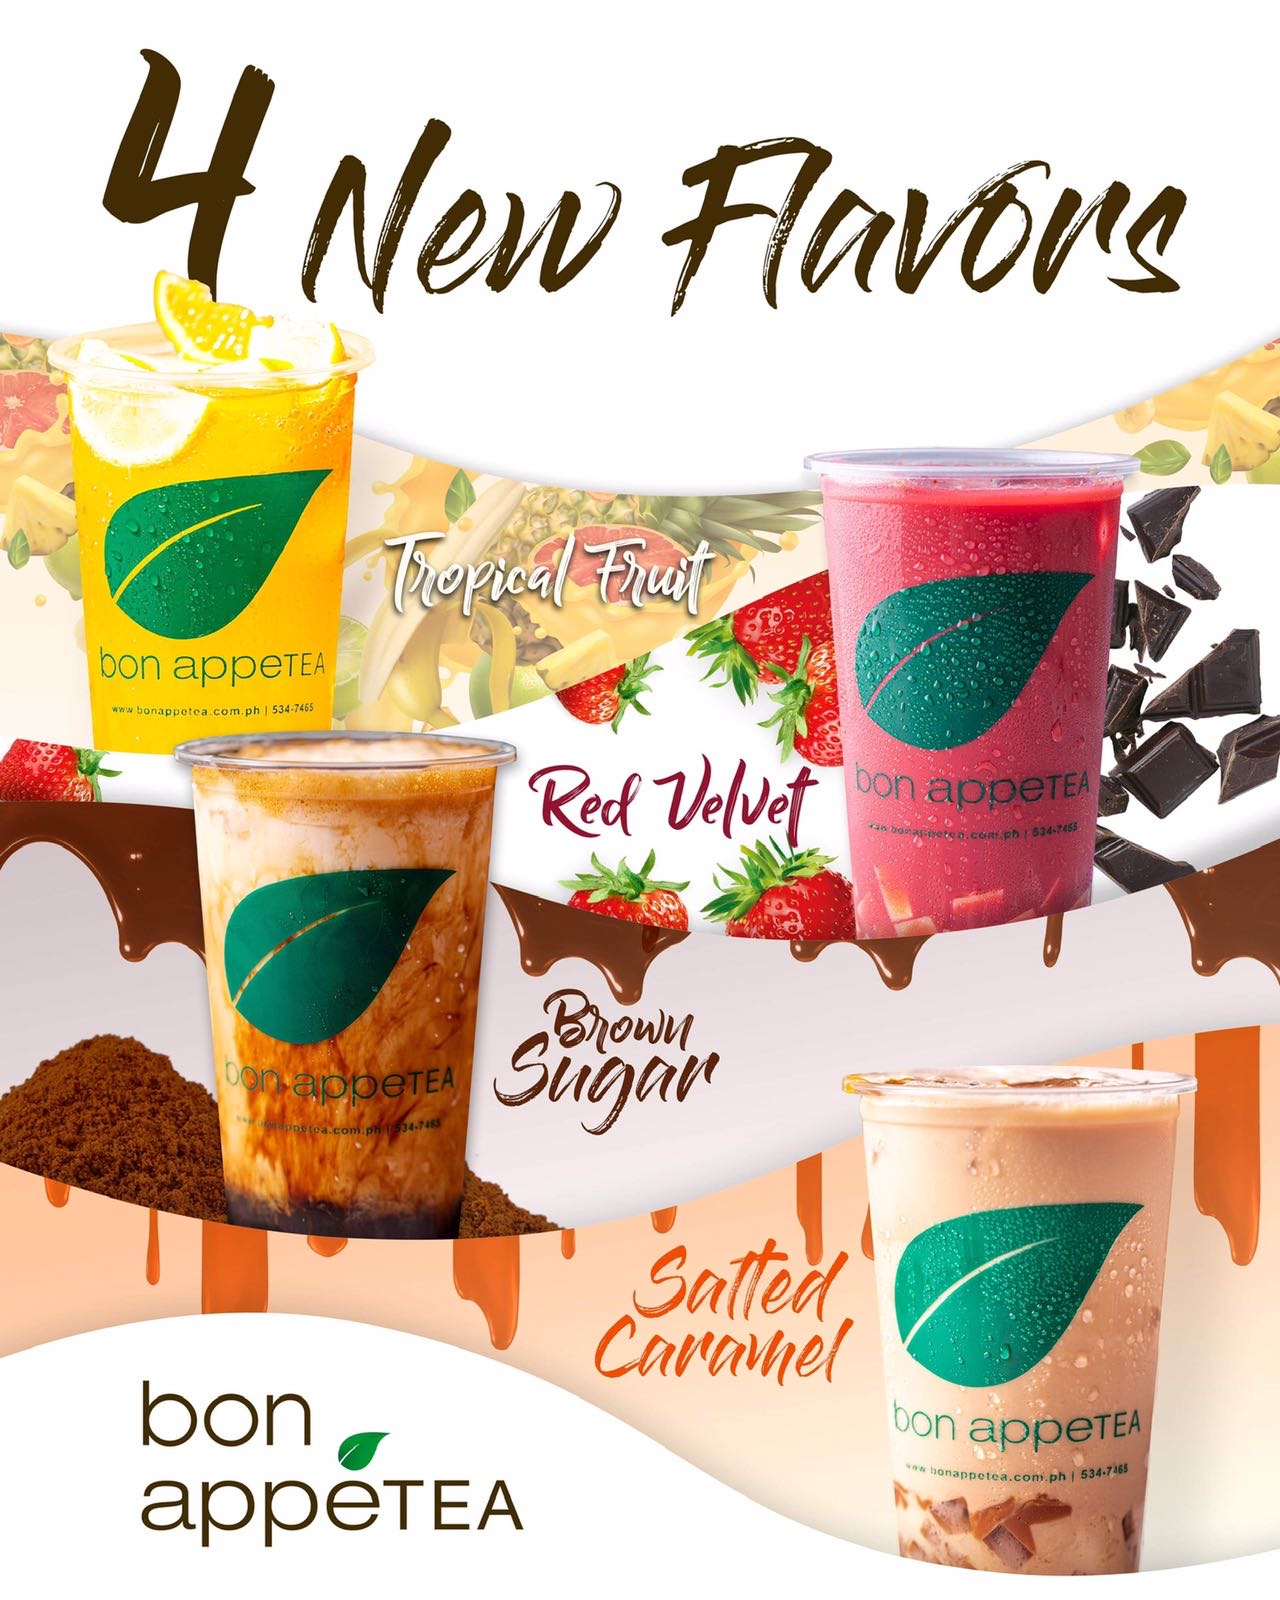 bon appetea best selling drinks